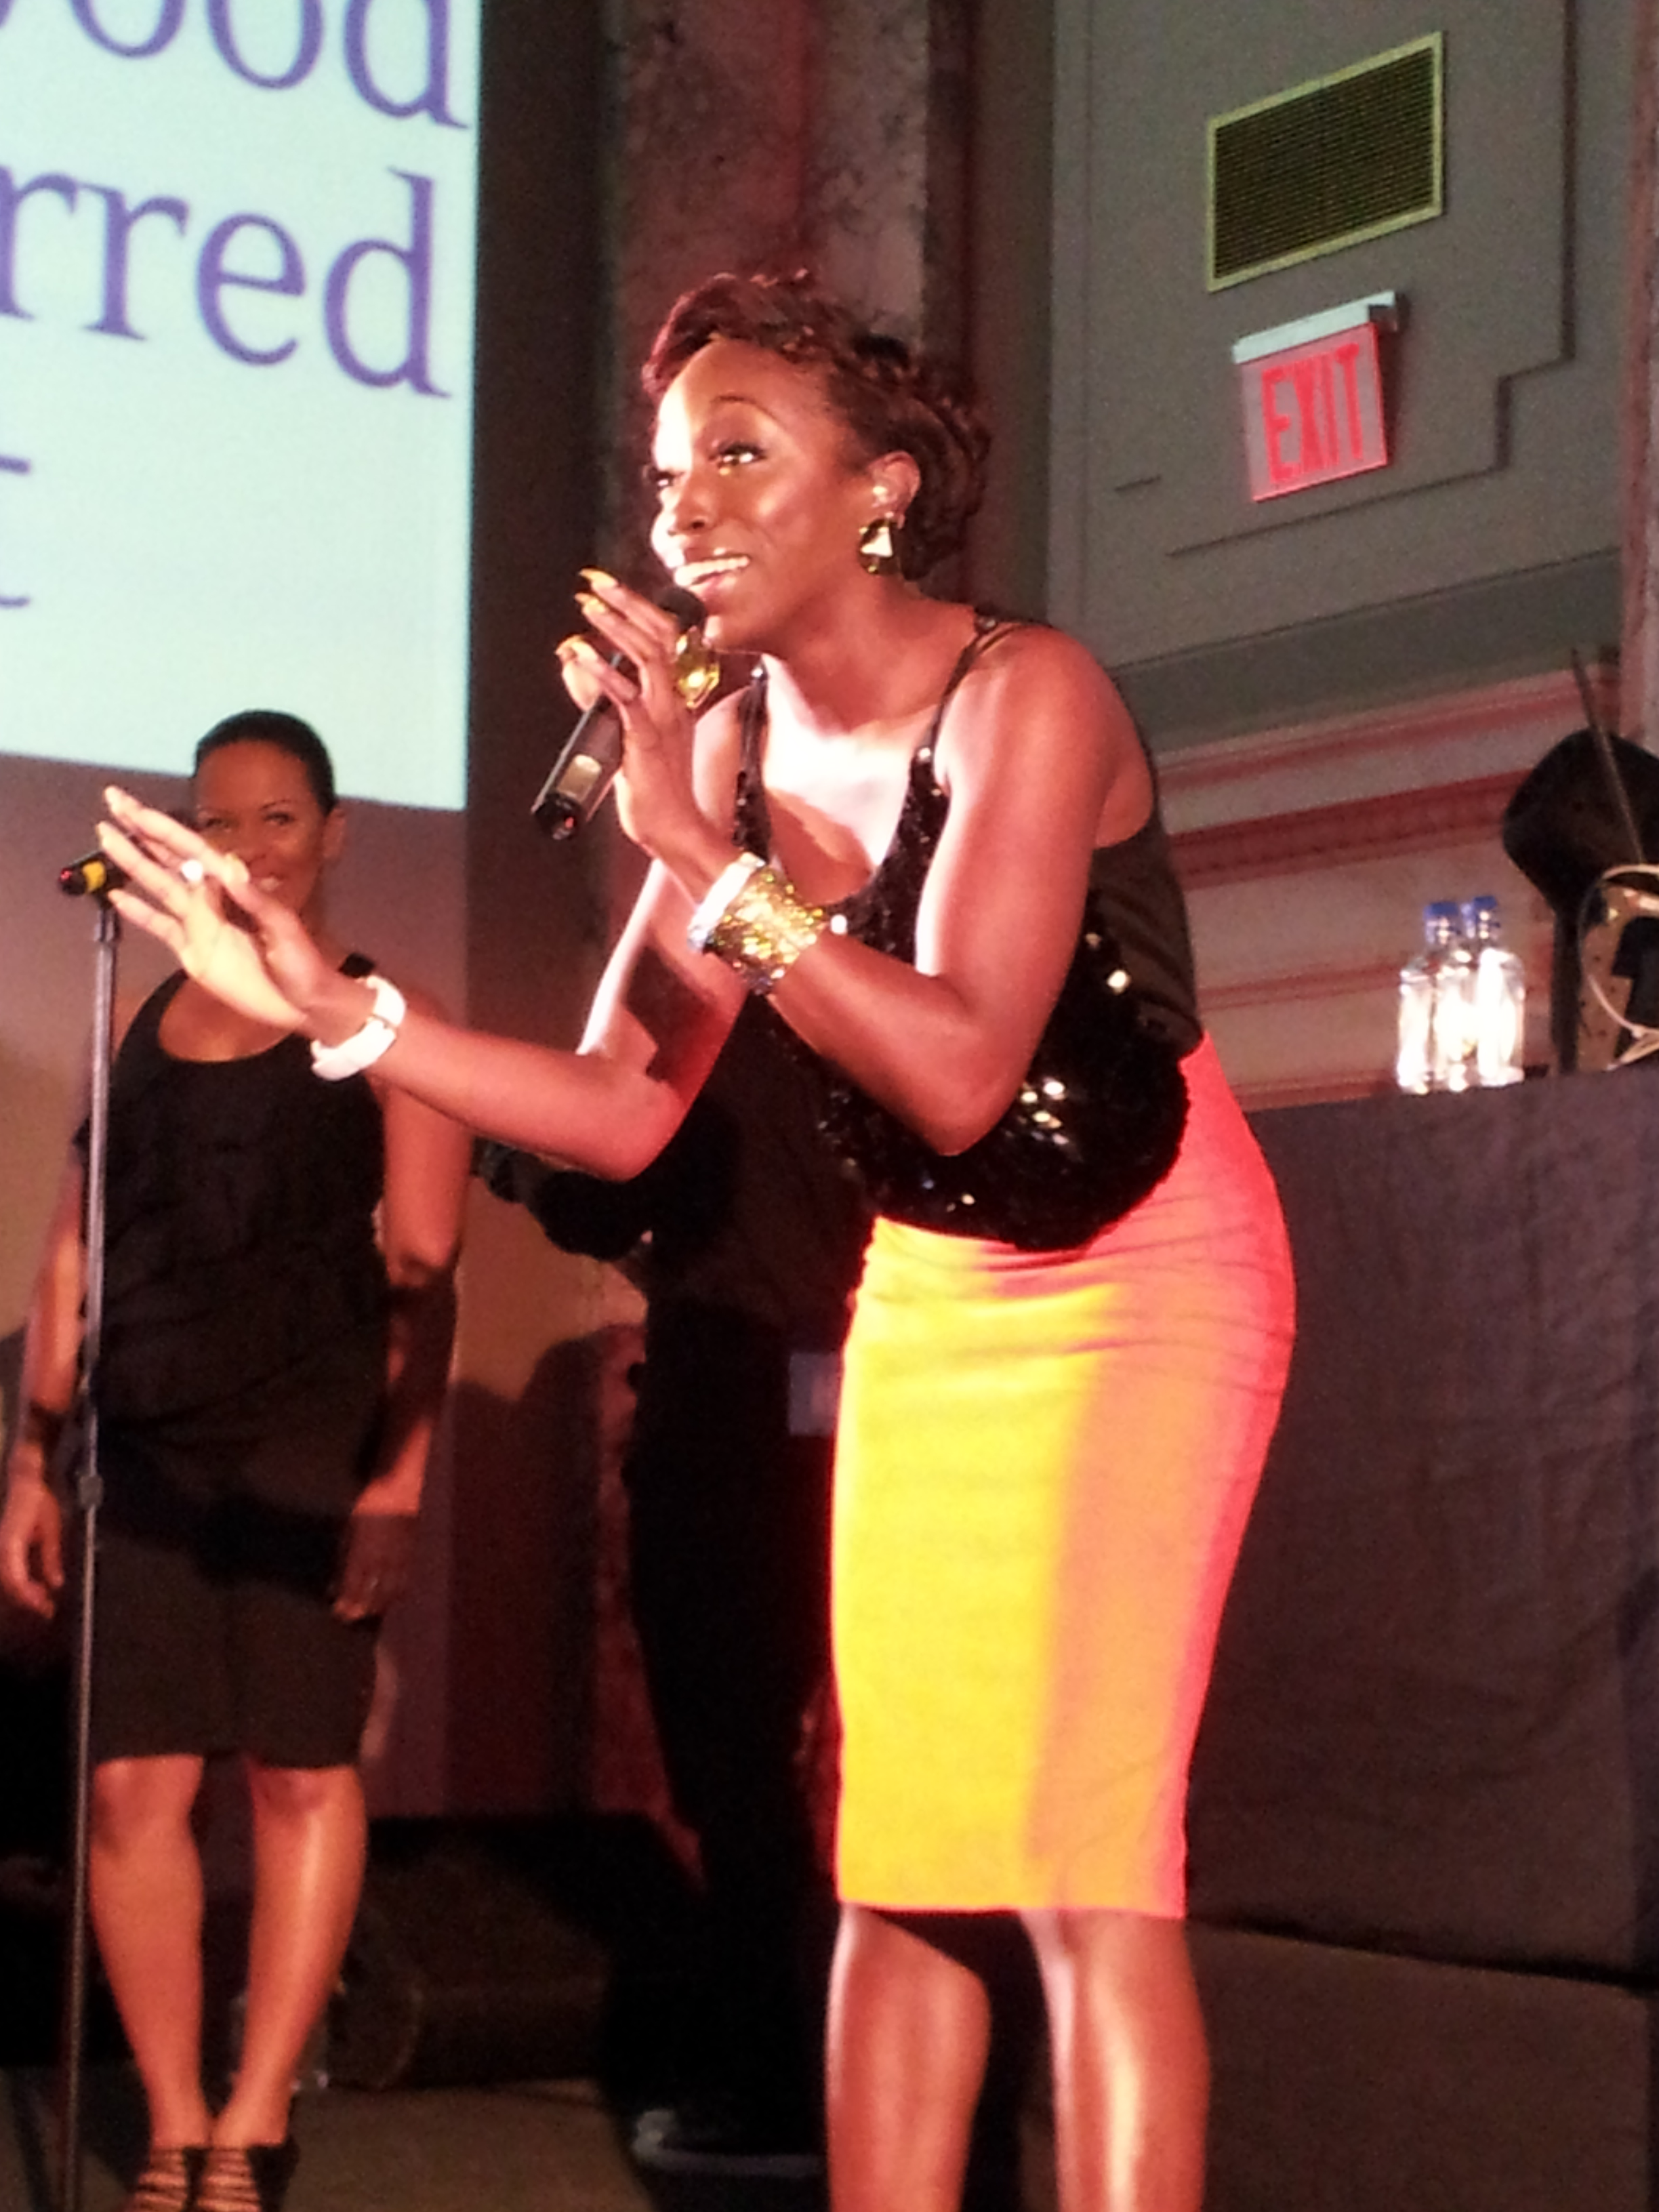 Estelle at the Starwood Preferred Guest Event in NYC